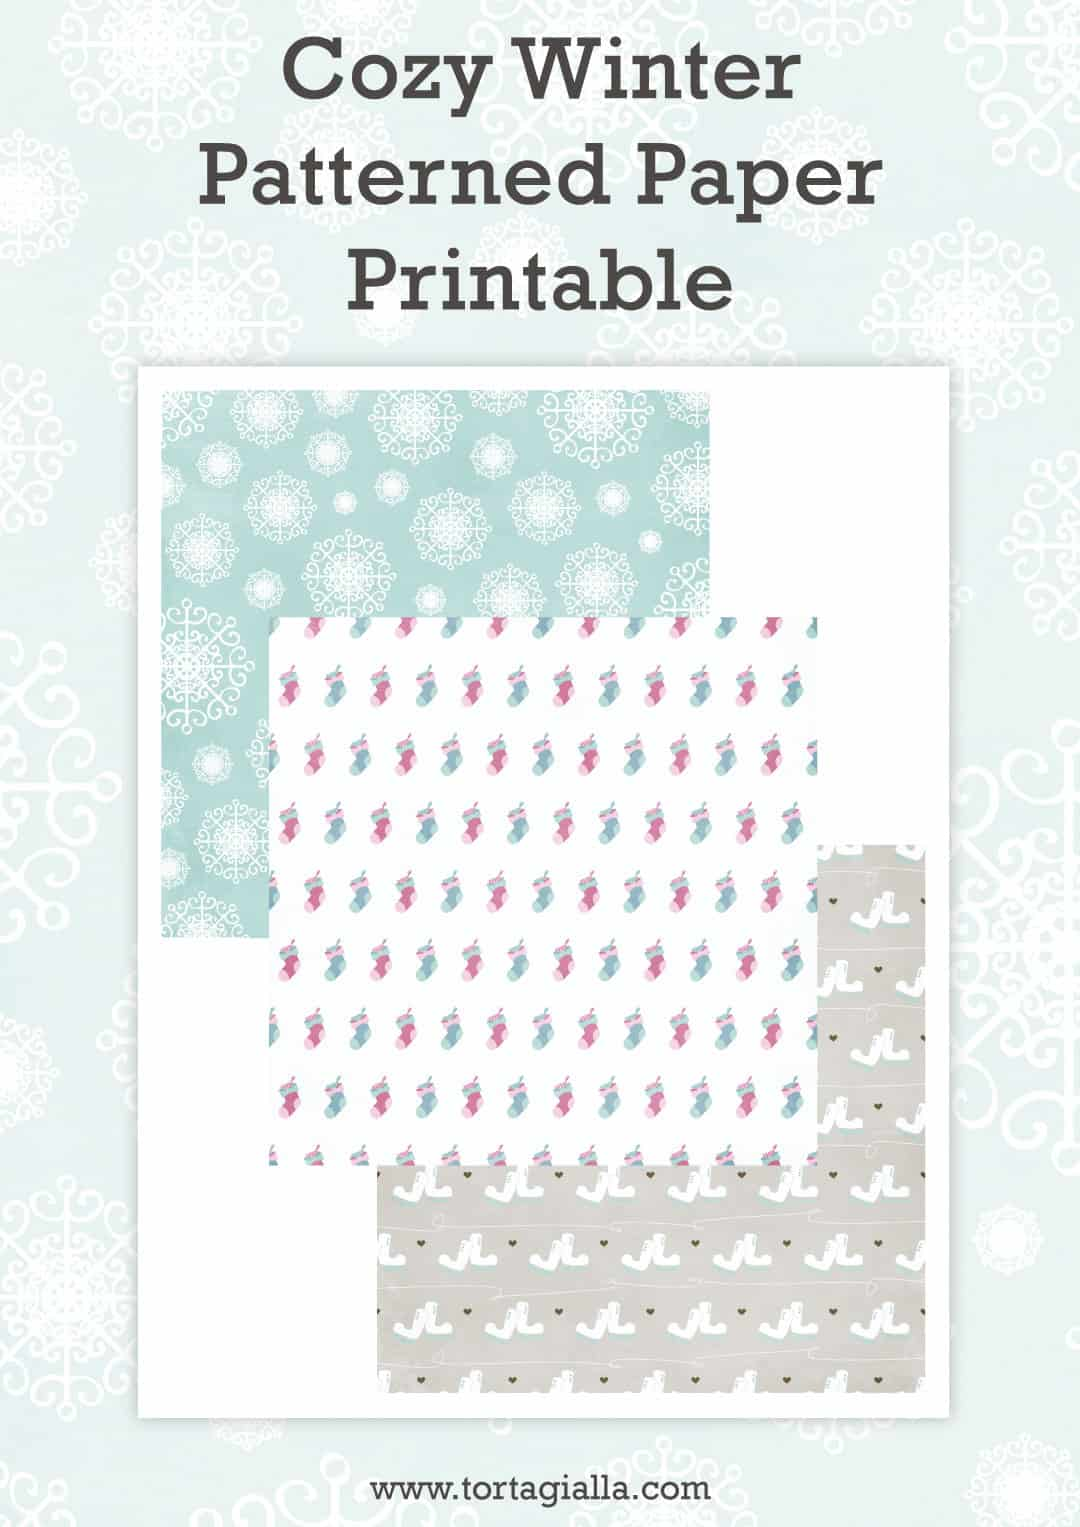 Cozy Winter Patterned Paper Printable on tortagialla.com